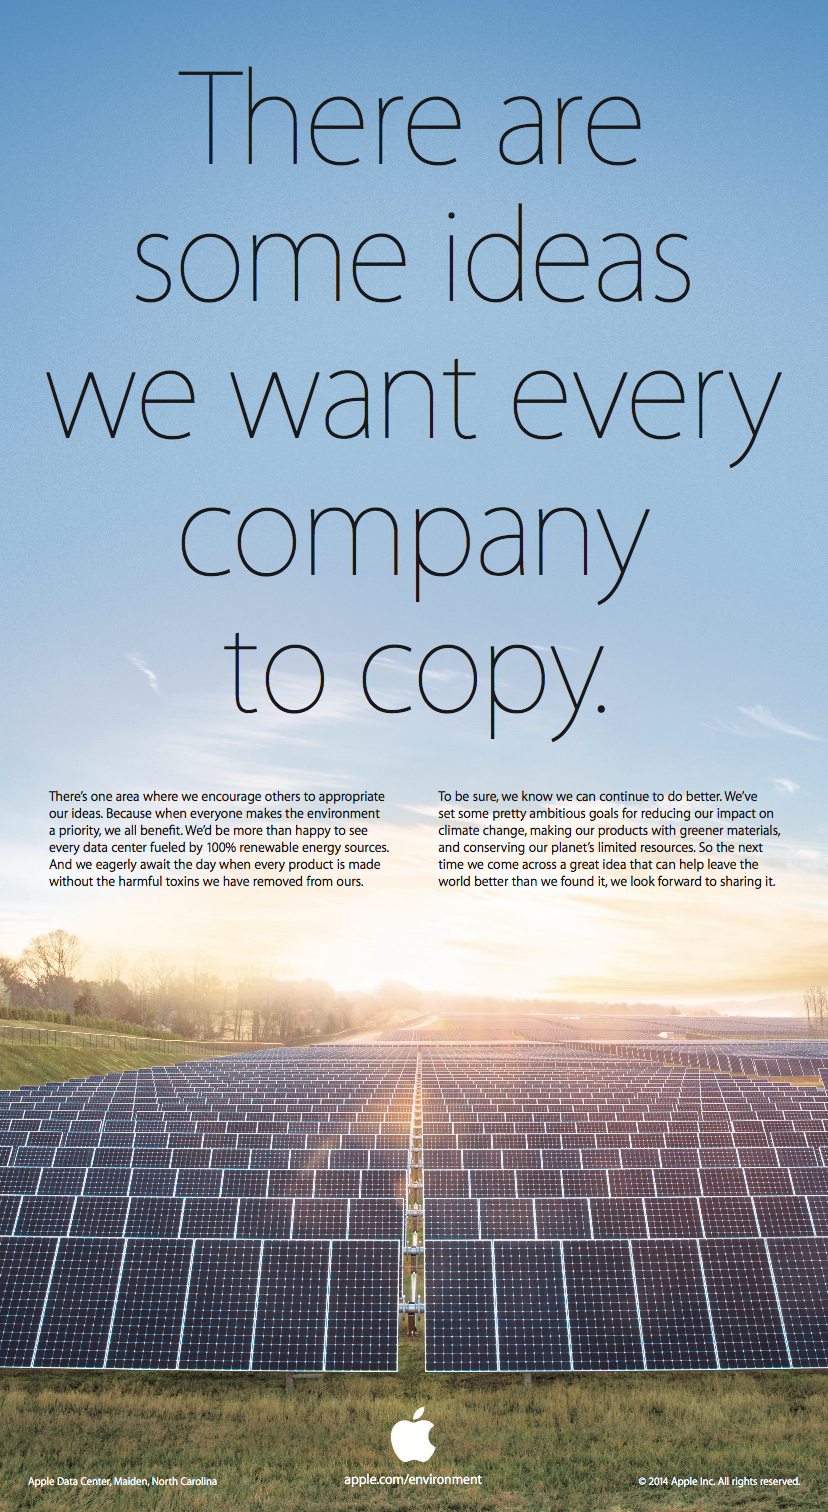 apple-earthdaynewspaperad4-9-14.jpg